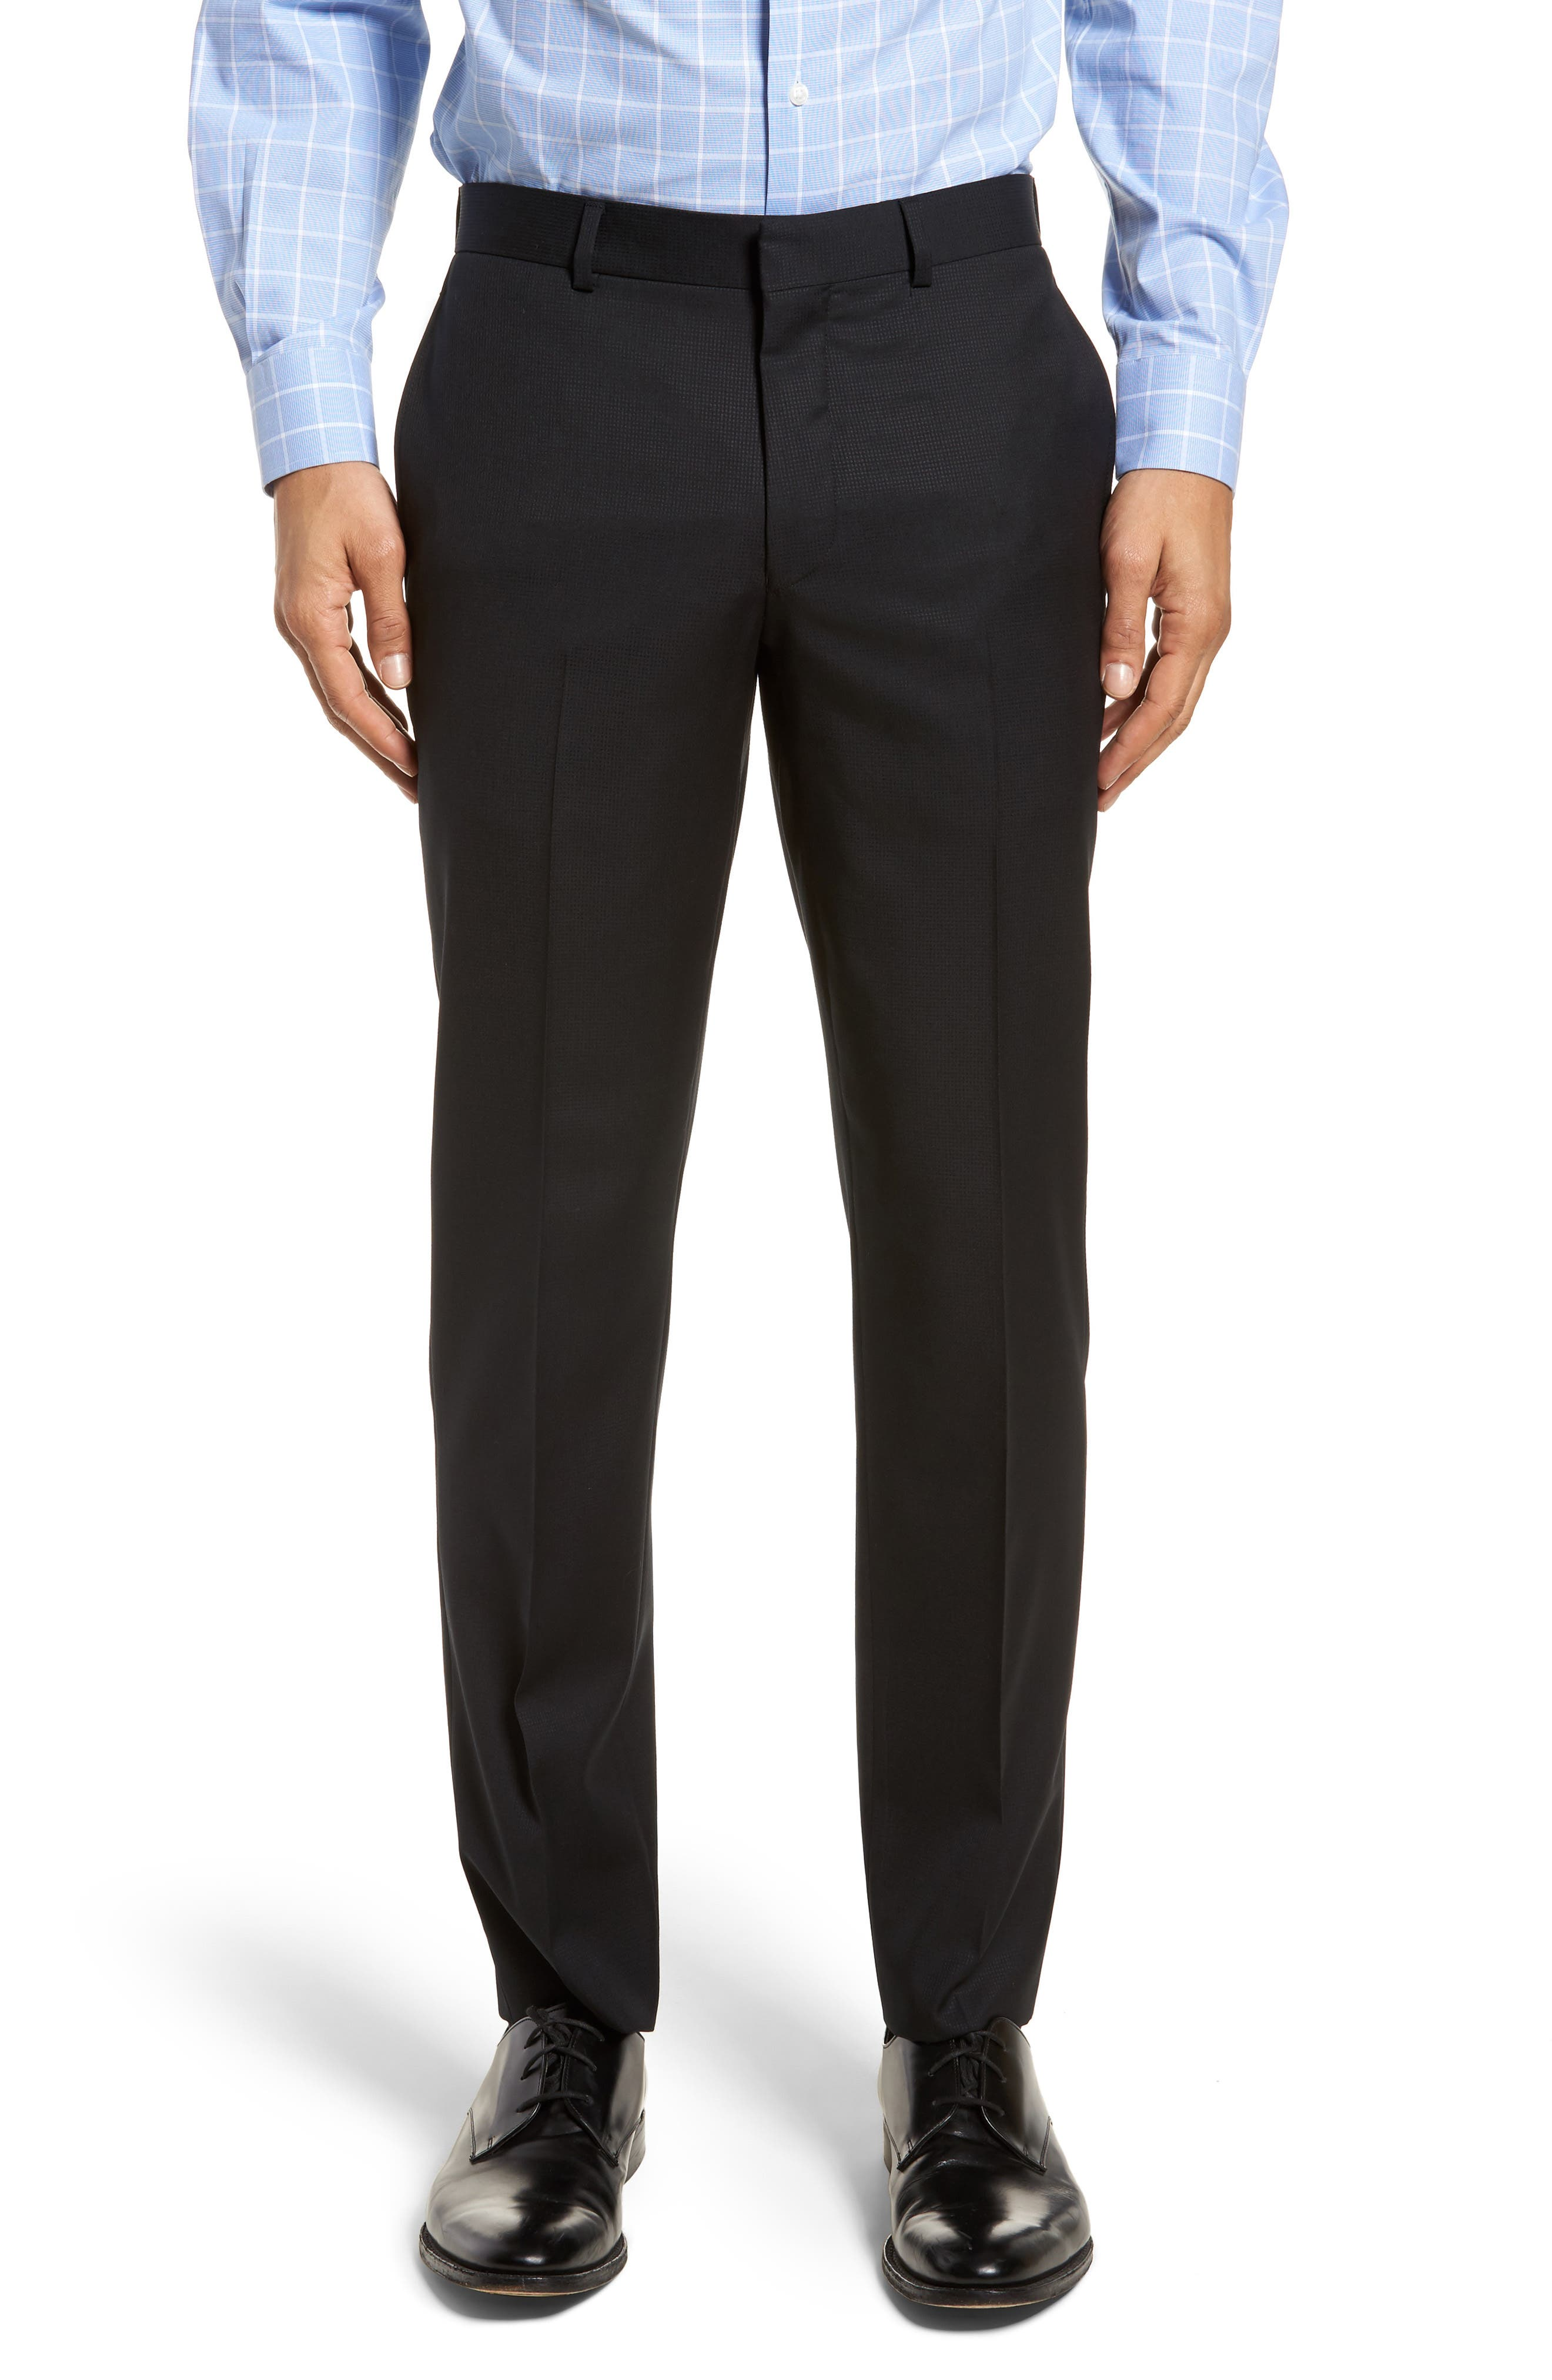 Roger Extra Slim Fit Solid Wool Suit,                             Alternate thumbnail 6, color,                             Black